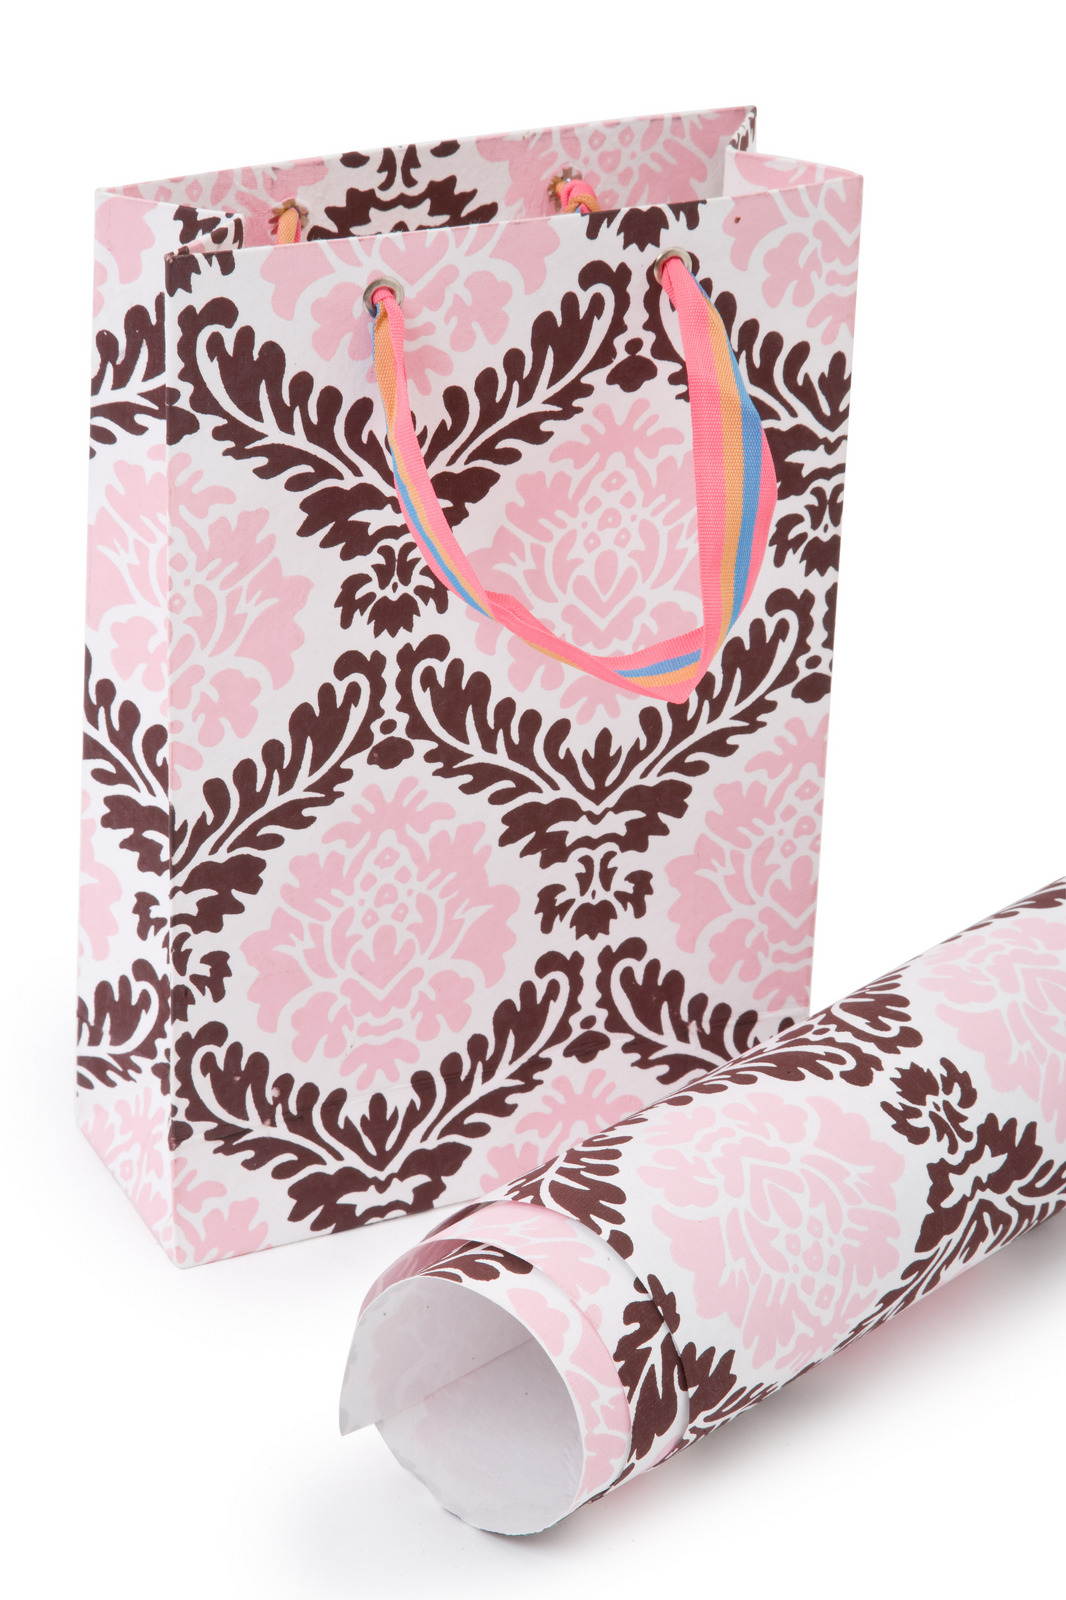 Pink And White Damask Wallpaper   HD Wallpapers Lovely 1066x1600